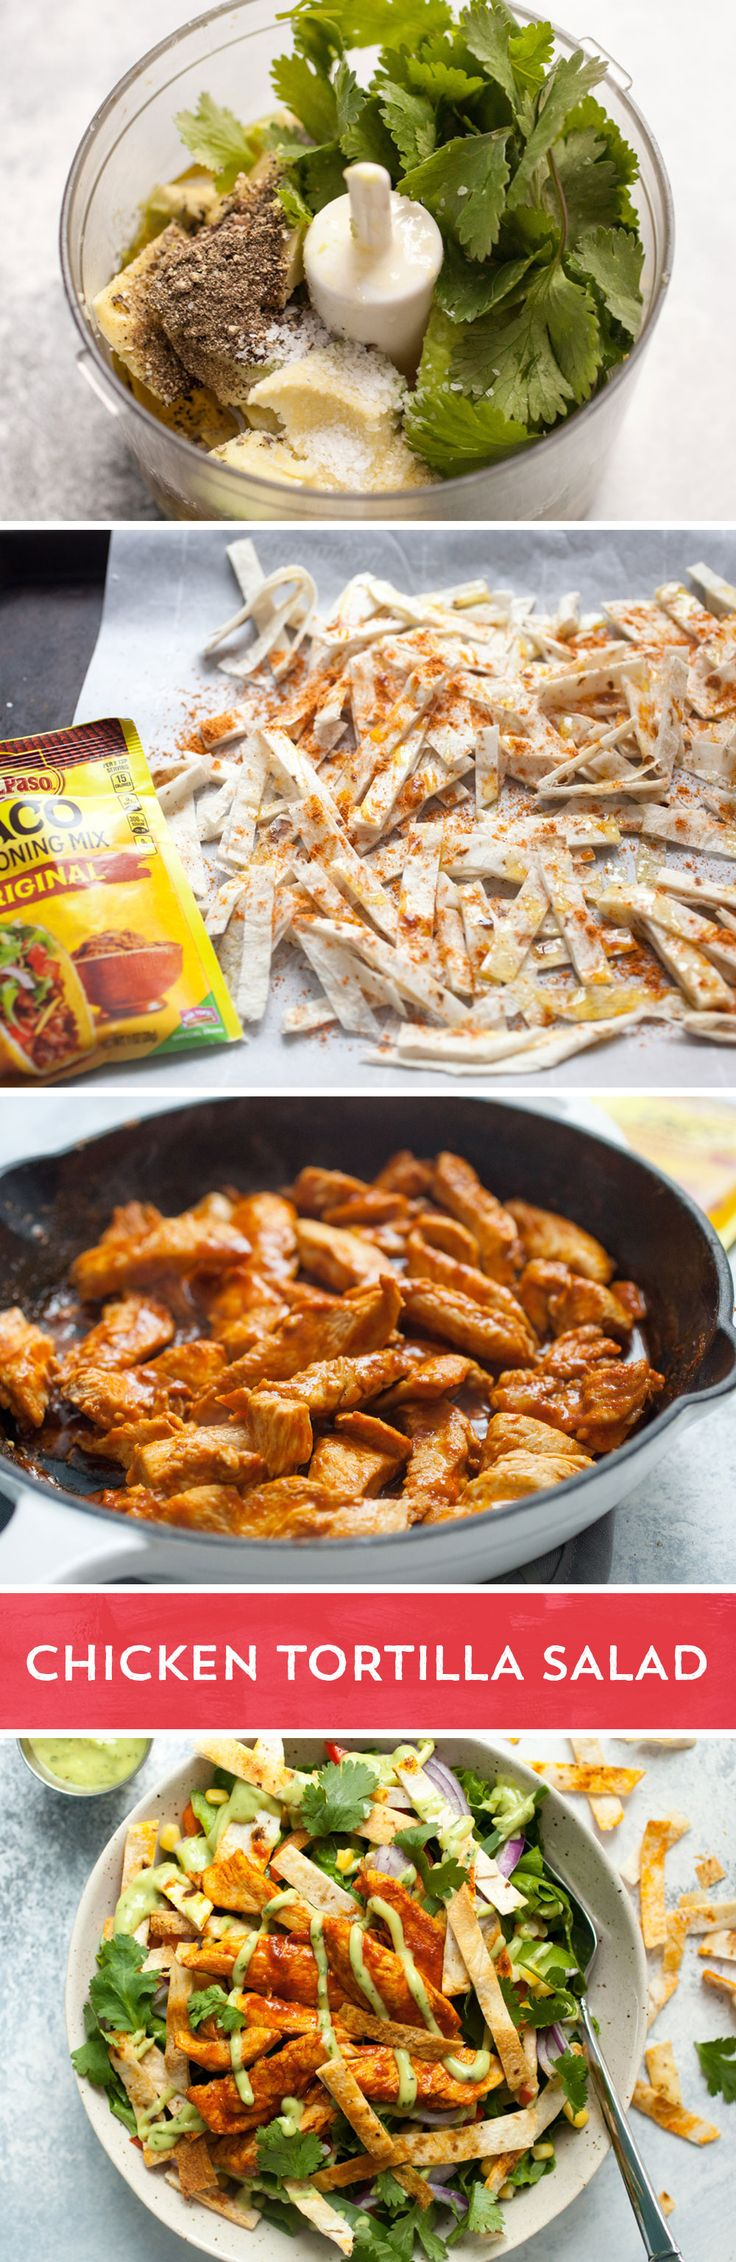 Who said healthy has to be boring? Definitely not with this delicious chicken tortilla salad from @macheesmo! Lettuce, onion, peppers, and corn act as the perfect bed for thinly sliced chicken breast flavored with Old El Paso™ chicken seasoning. Homemade crispy flour tortilla strips coated in Old El Paso™ taco seasoning bring the flavor to a whole new level and that is before you top it off with an easy homemade avocado vinaigrette. This salad is anything but boring!